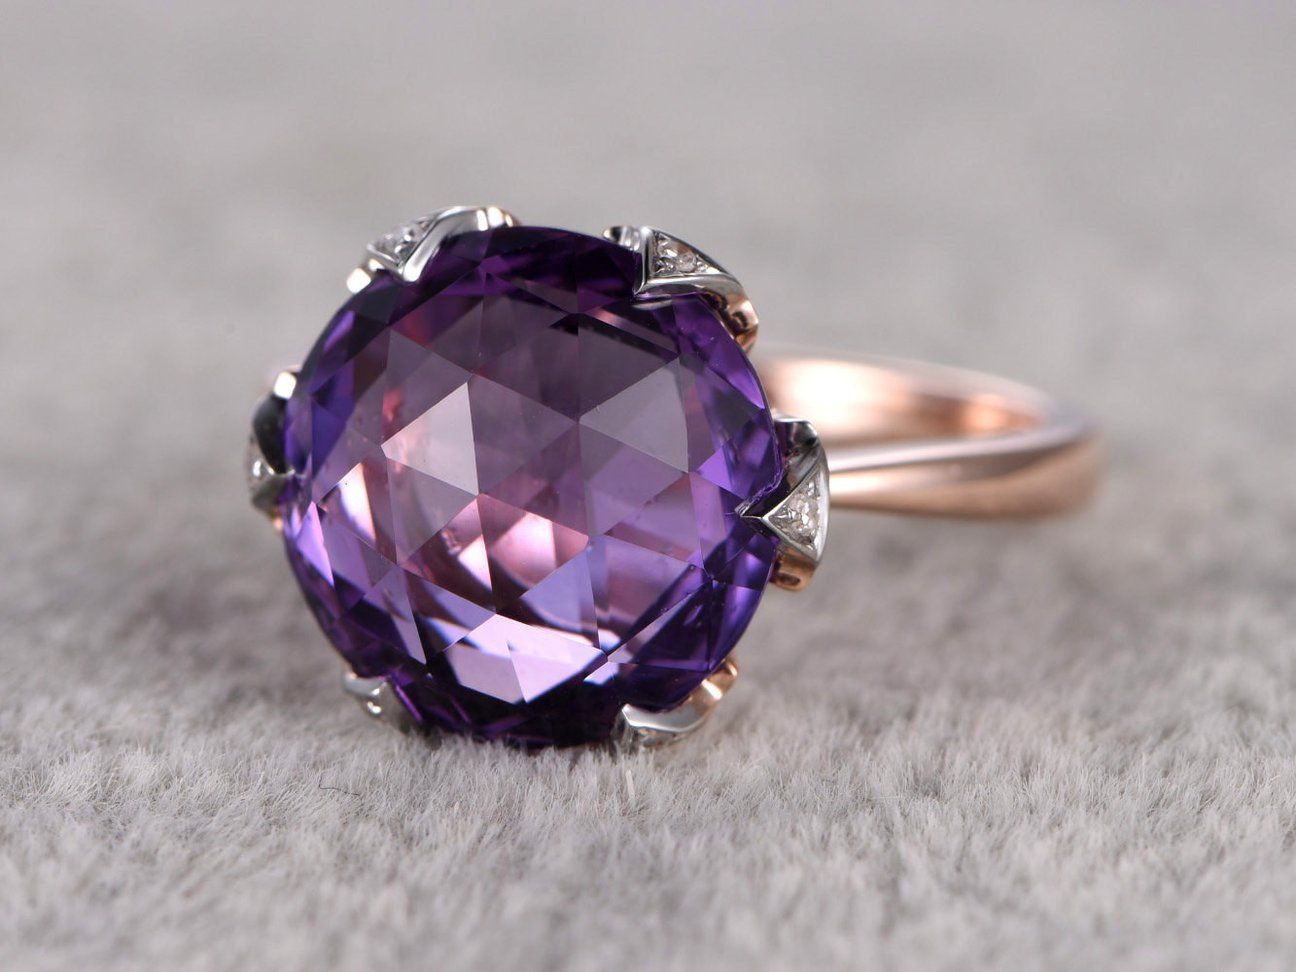 Big 12mm Amethyst Engagement Ring Diamond 6 Claw Wedding Ring 14k